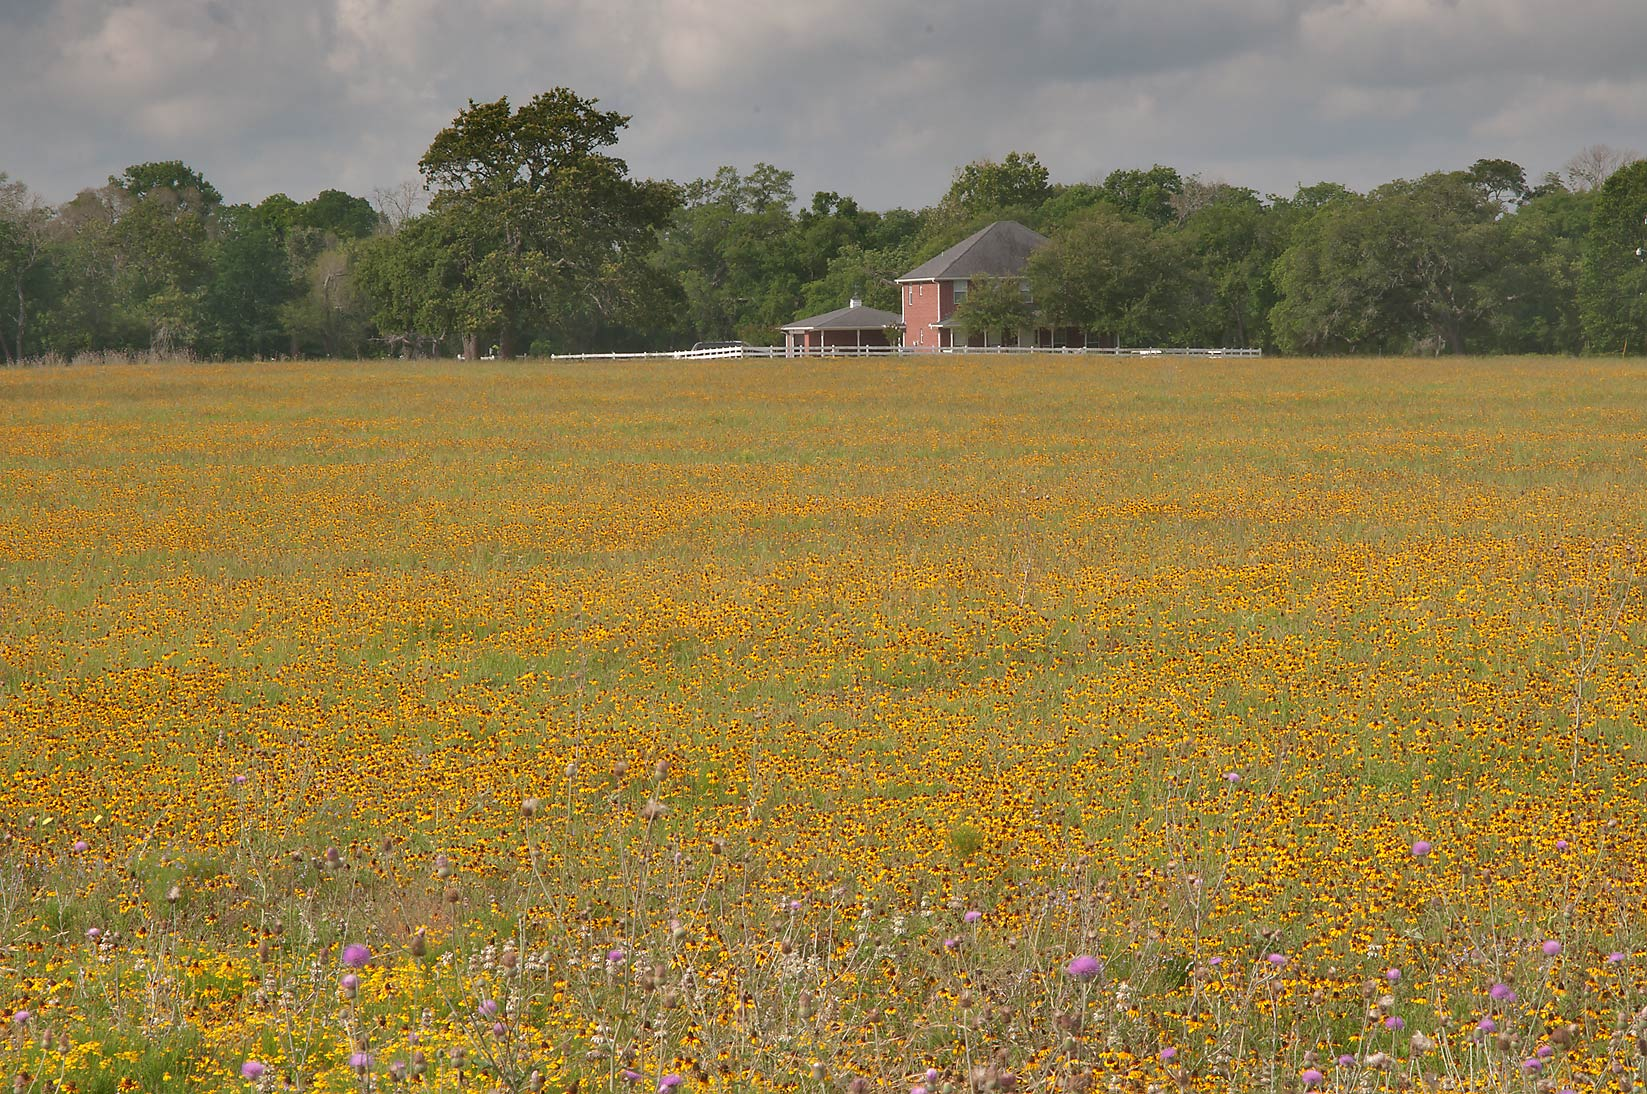 Field of black eyed susan flowers from Rd. 159 near Millican. Texas